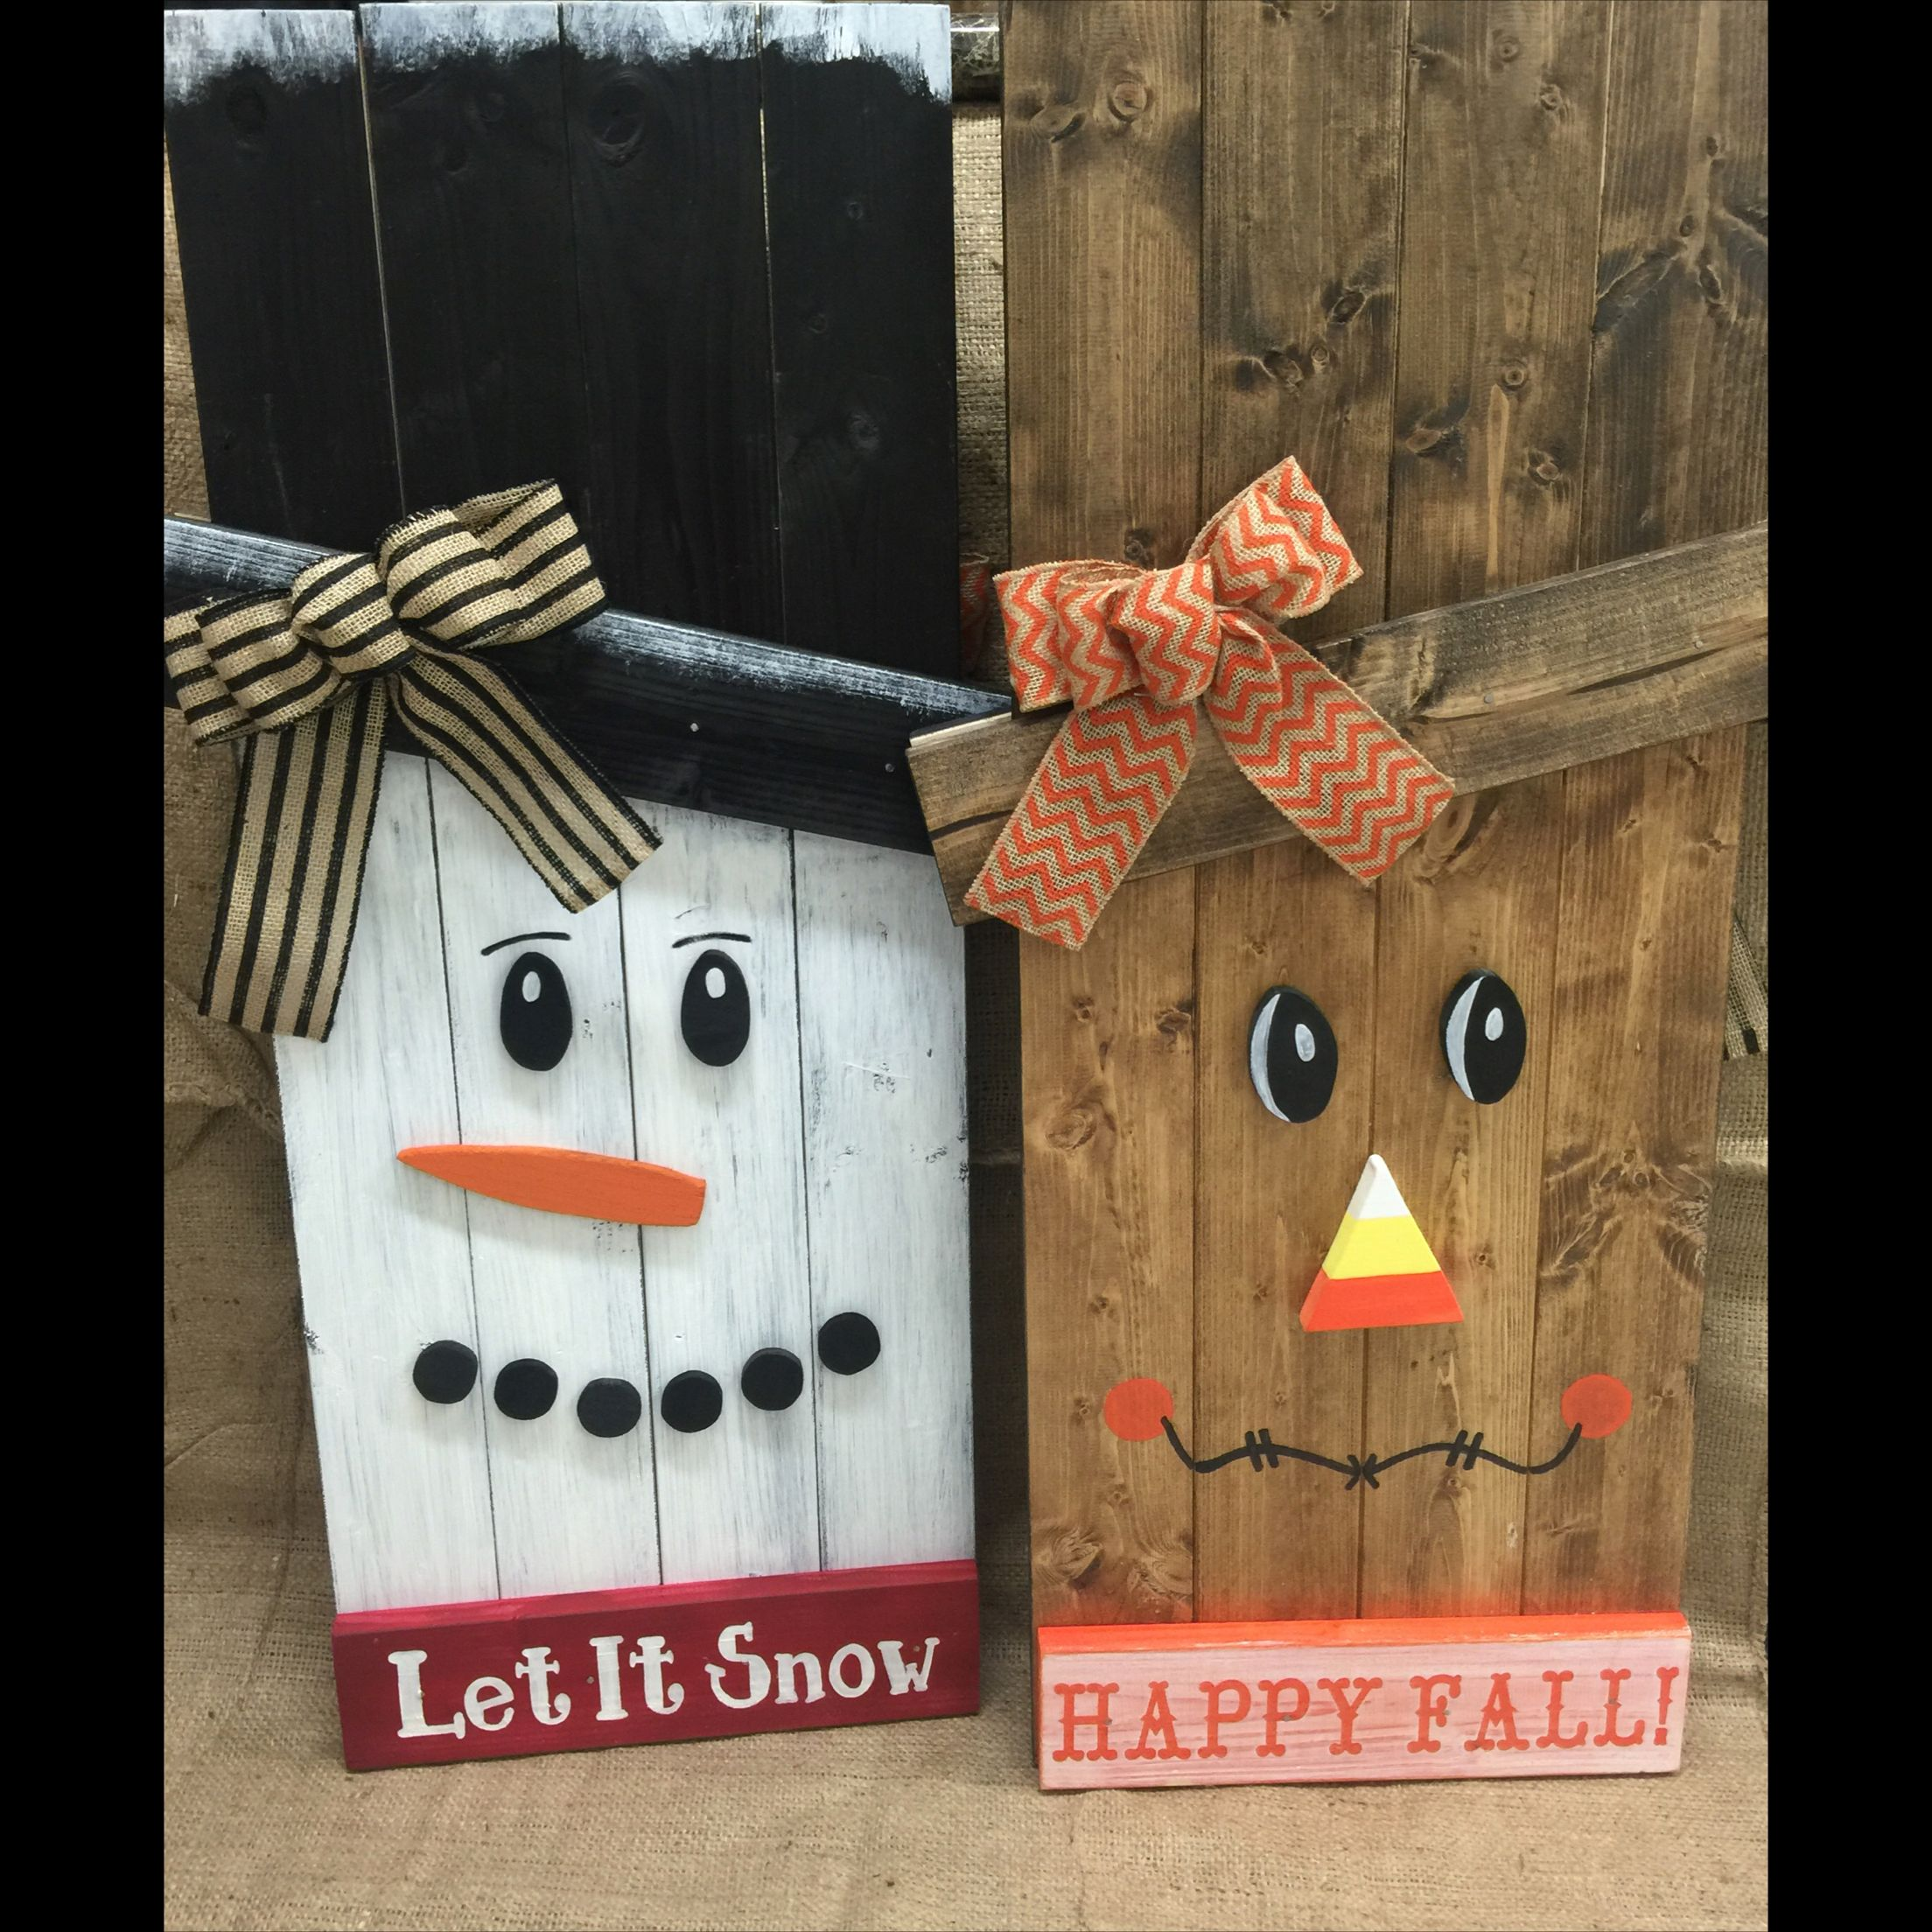 Reversible Snowman Scarecrow Pallet Signs Thecraftyqueen Crafts Wooden Pallet Crafts Pallet Christmas